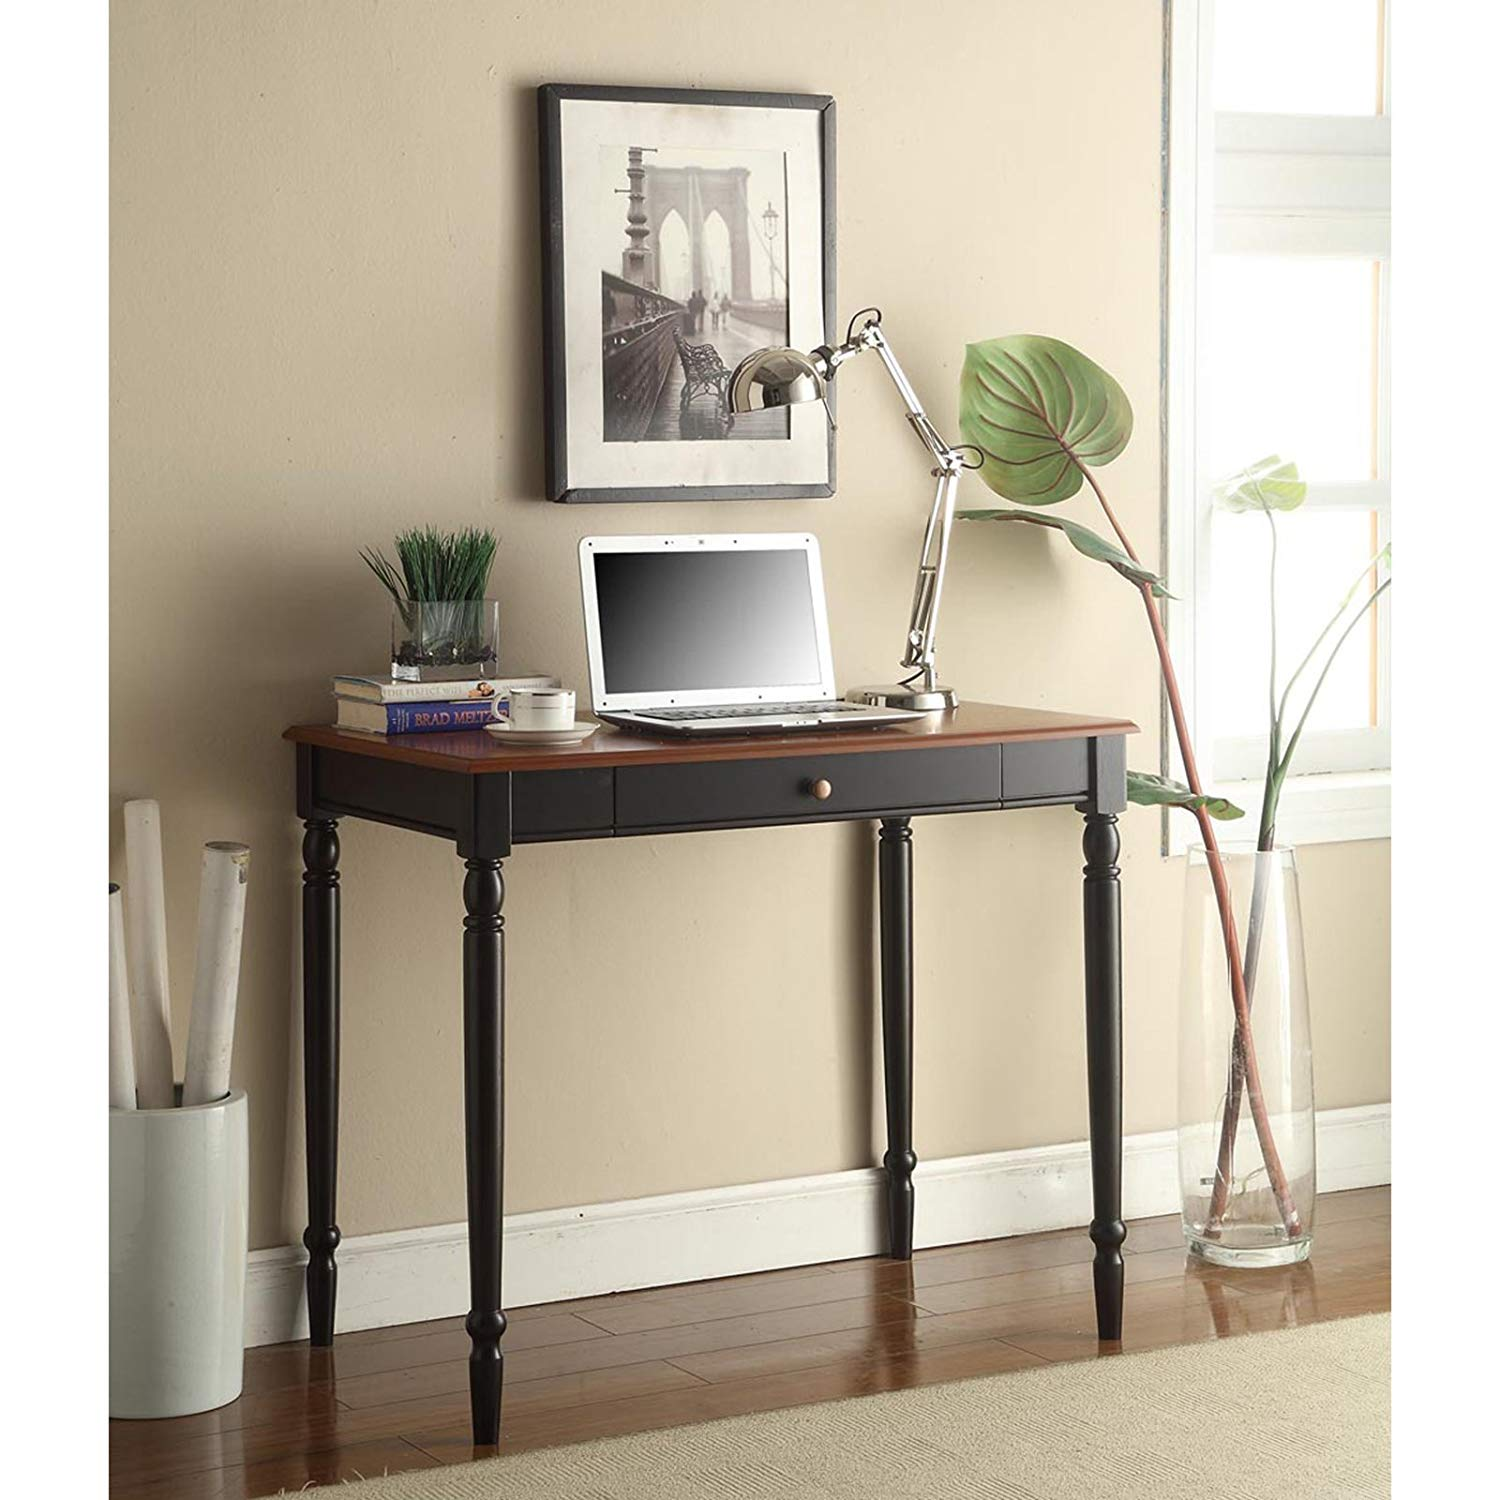 Cherry/Black Country Writing Desk, Office Furniture, Home, Keyboard Tray, Spacious Workspace, Solid Hardwoods, Wood, Indoor, Bundle with Our Expert Guide with Tips for Home Arrangement